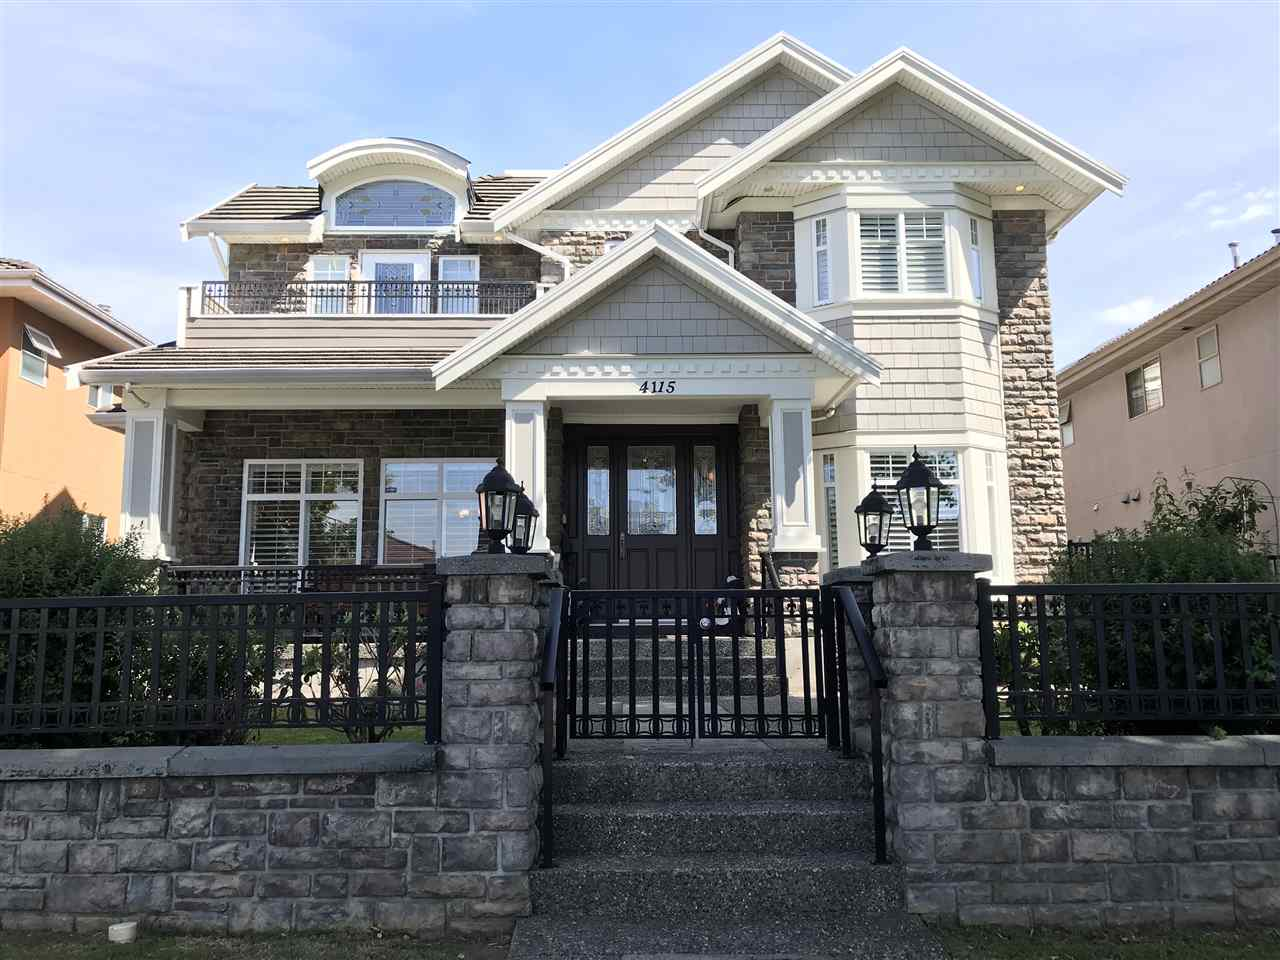 Removed: 4115 Napier Street, Burnaby, BC - Removed on 2019-07-19 07:06:06